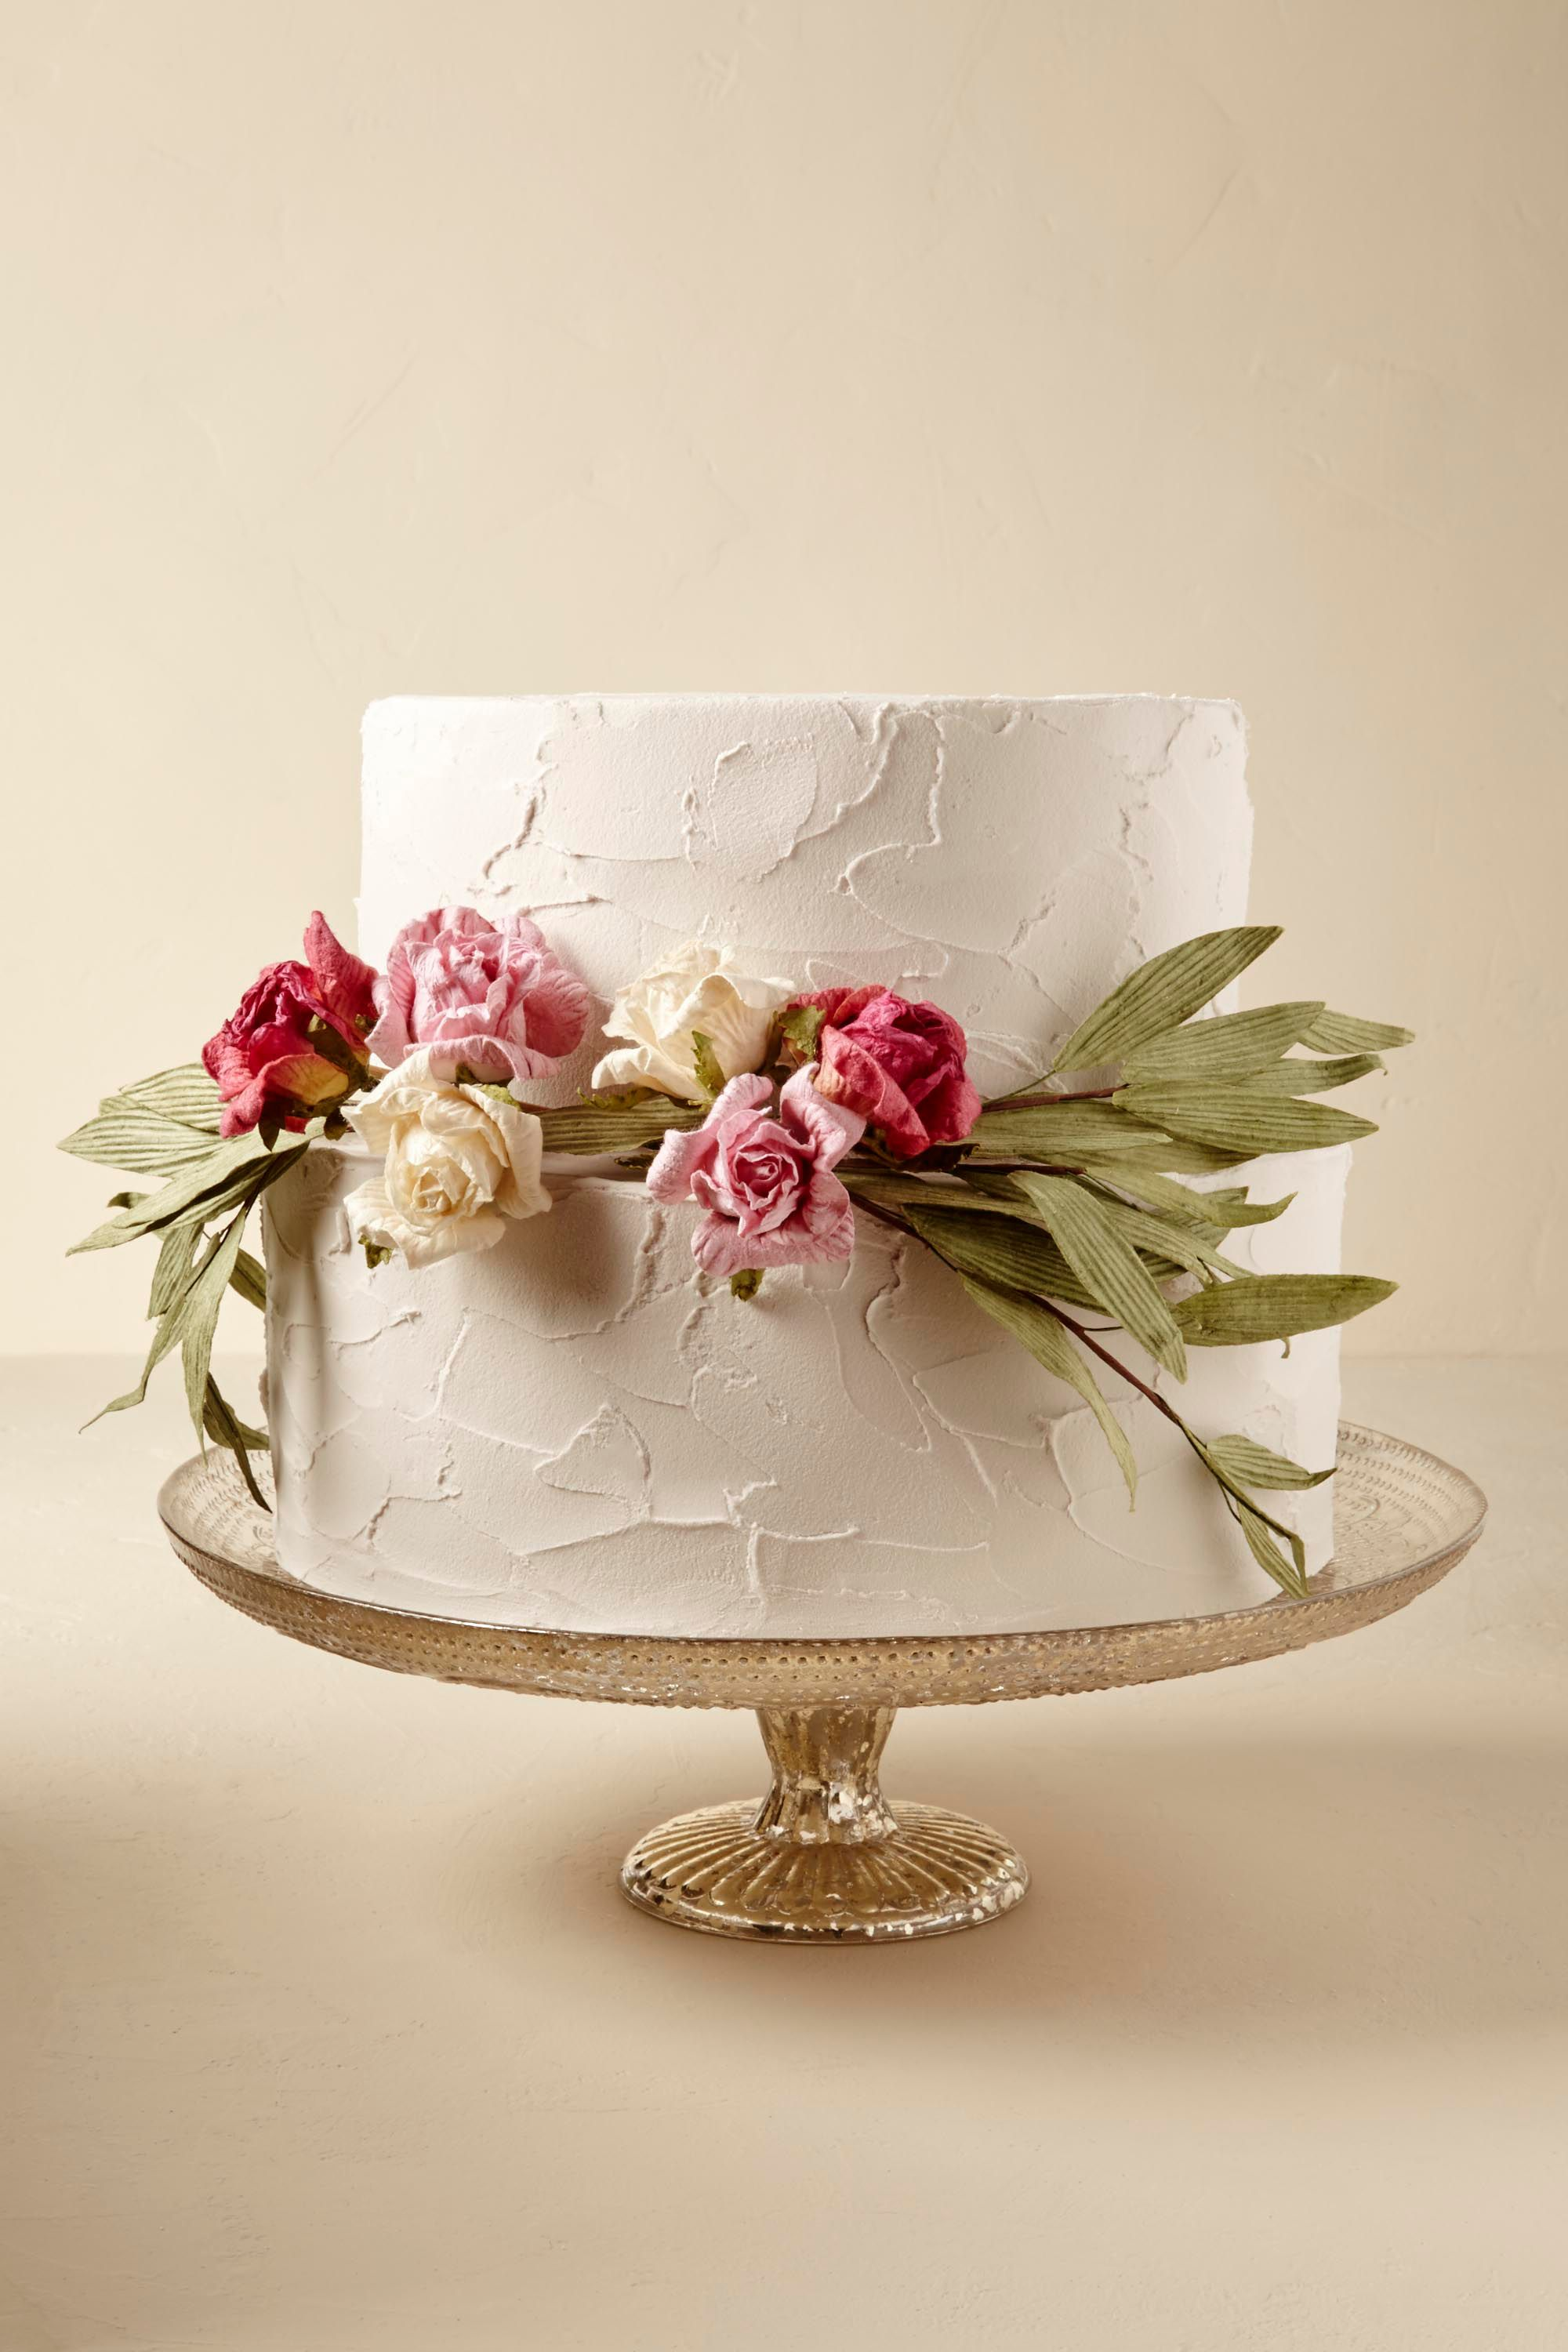 Spring Blooms Cake Decoration (2)